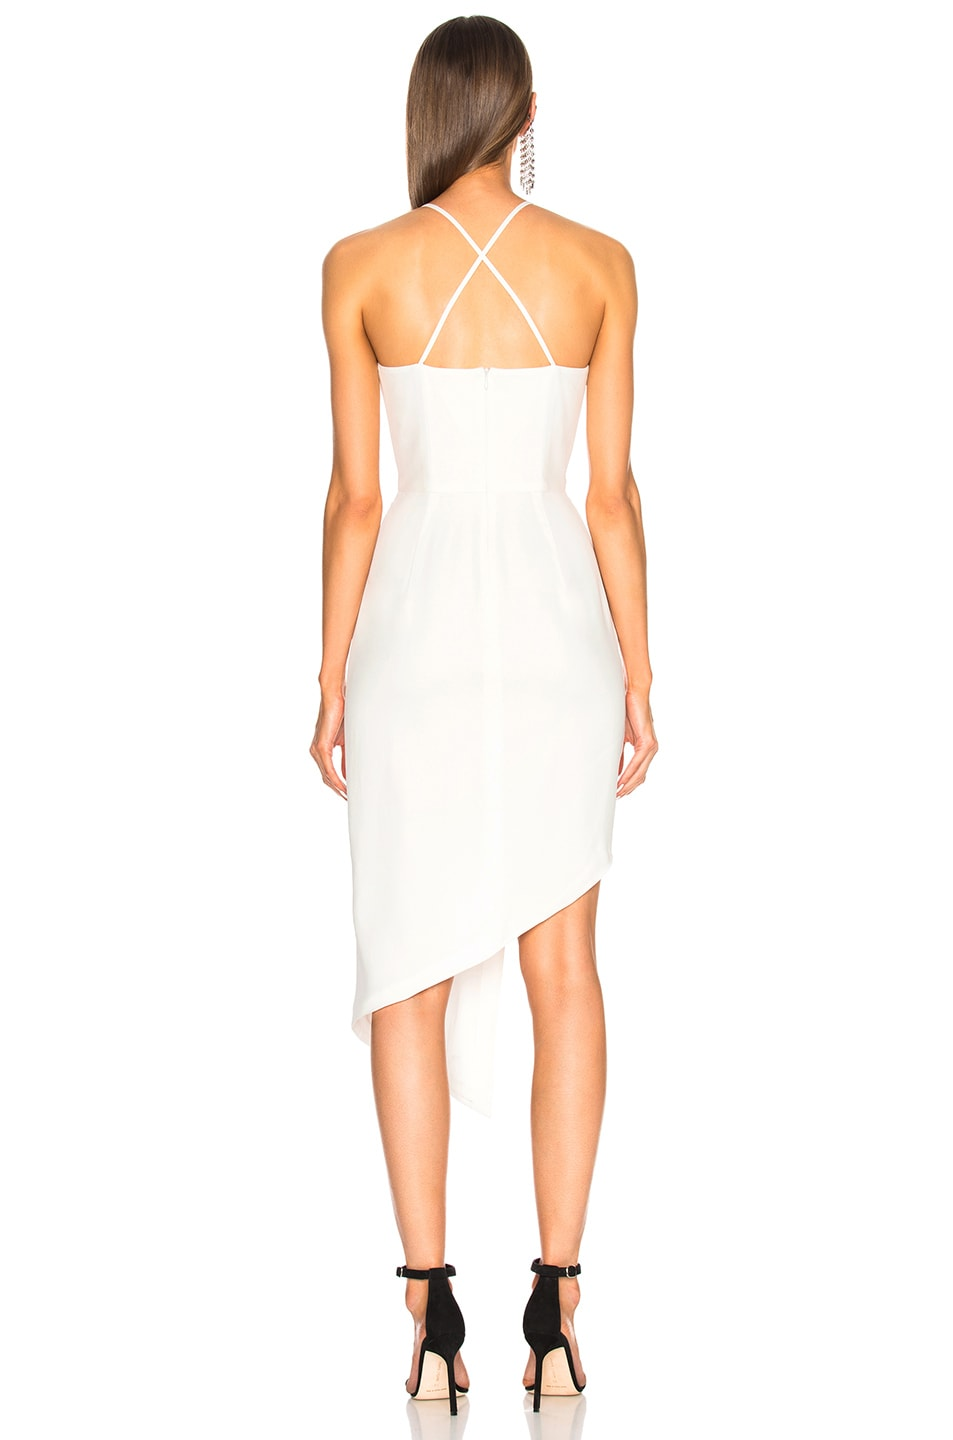 8042526b70d0a Image 4 of Michelle Mason Asymmetrical Plunge Dress in Ivory